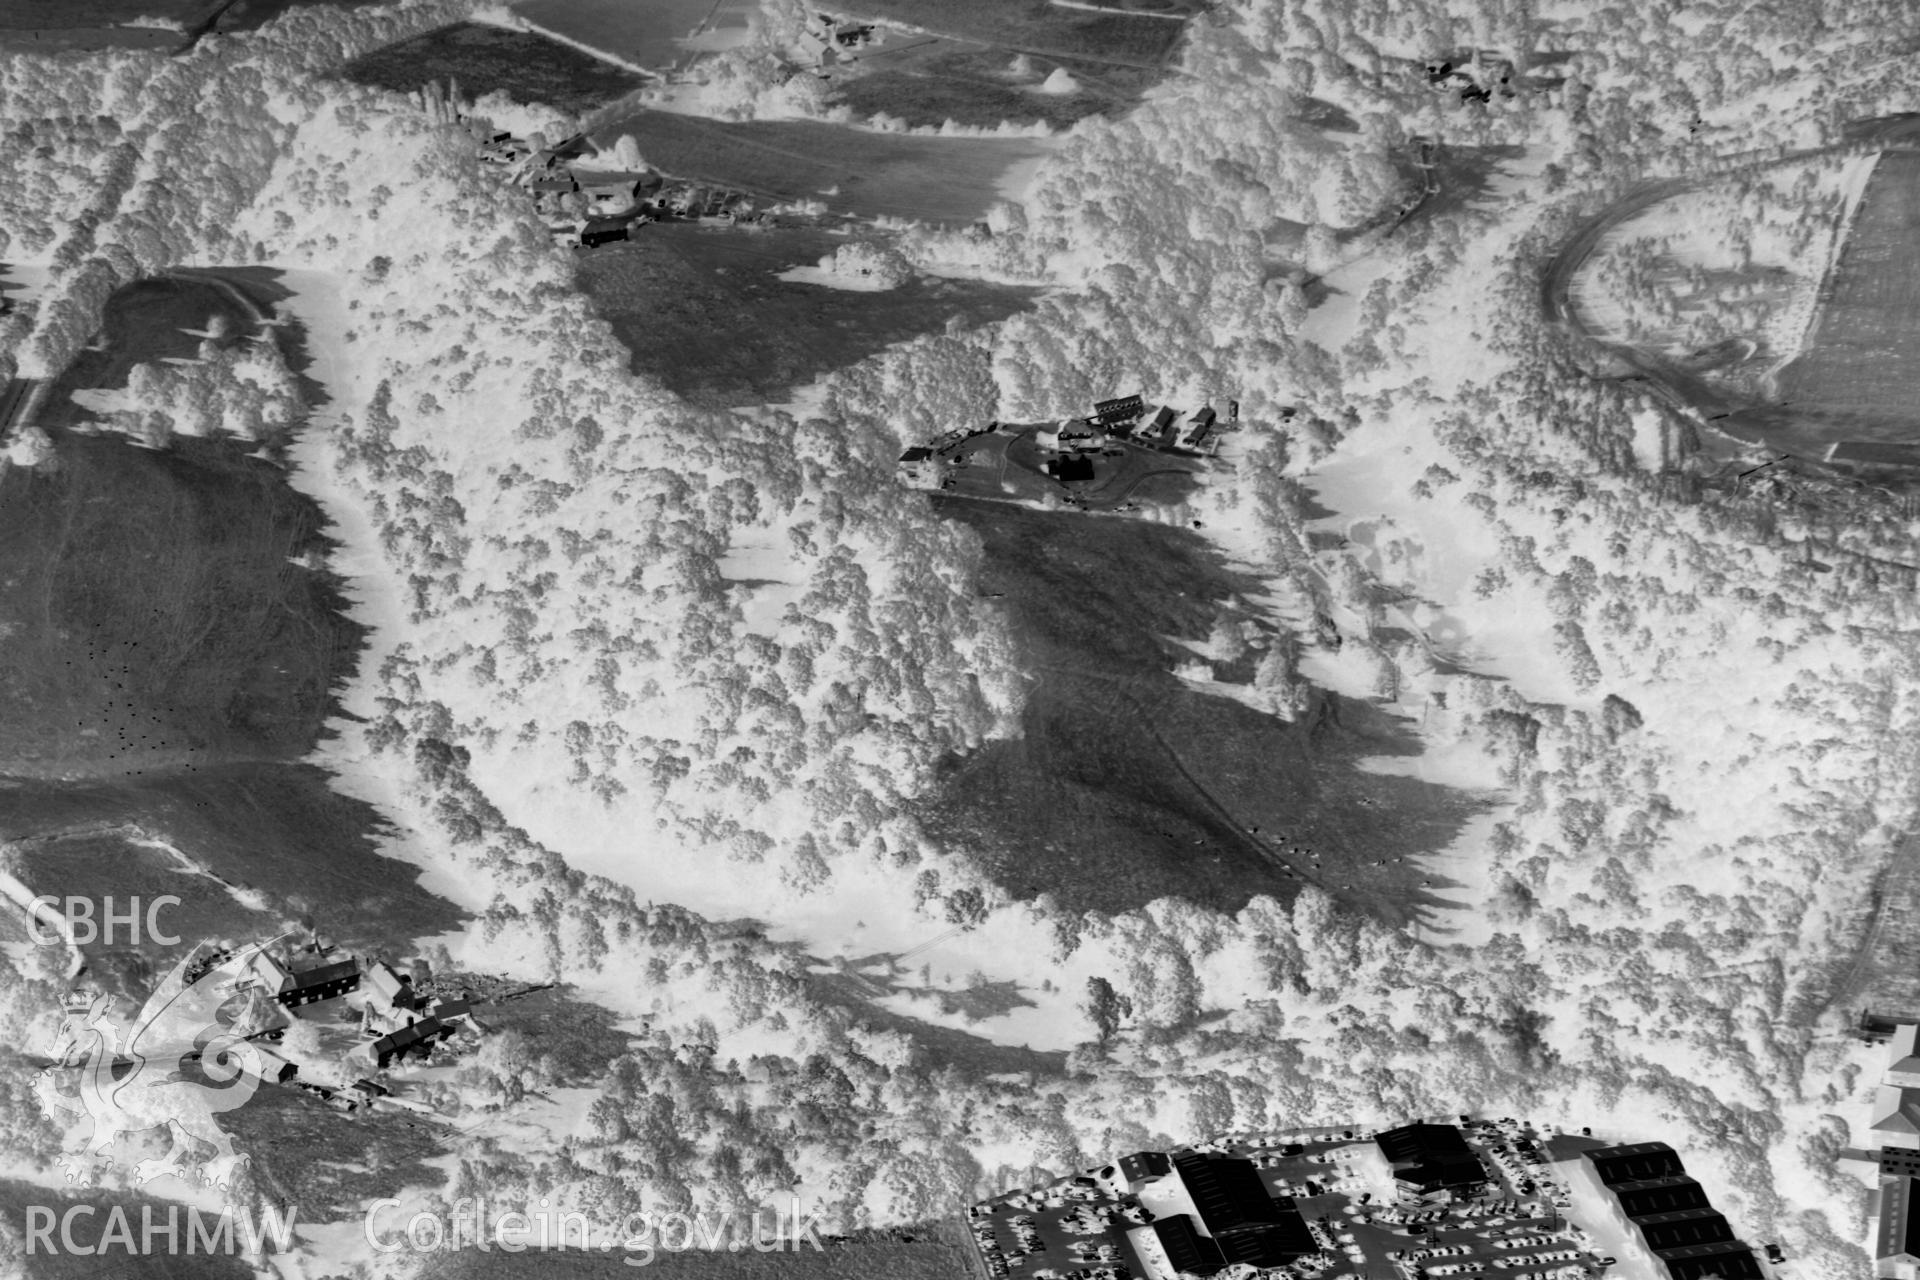 Digital black and white photograph showing Bryn Alyn Hillfort and the surrounding area.